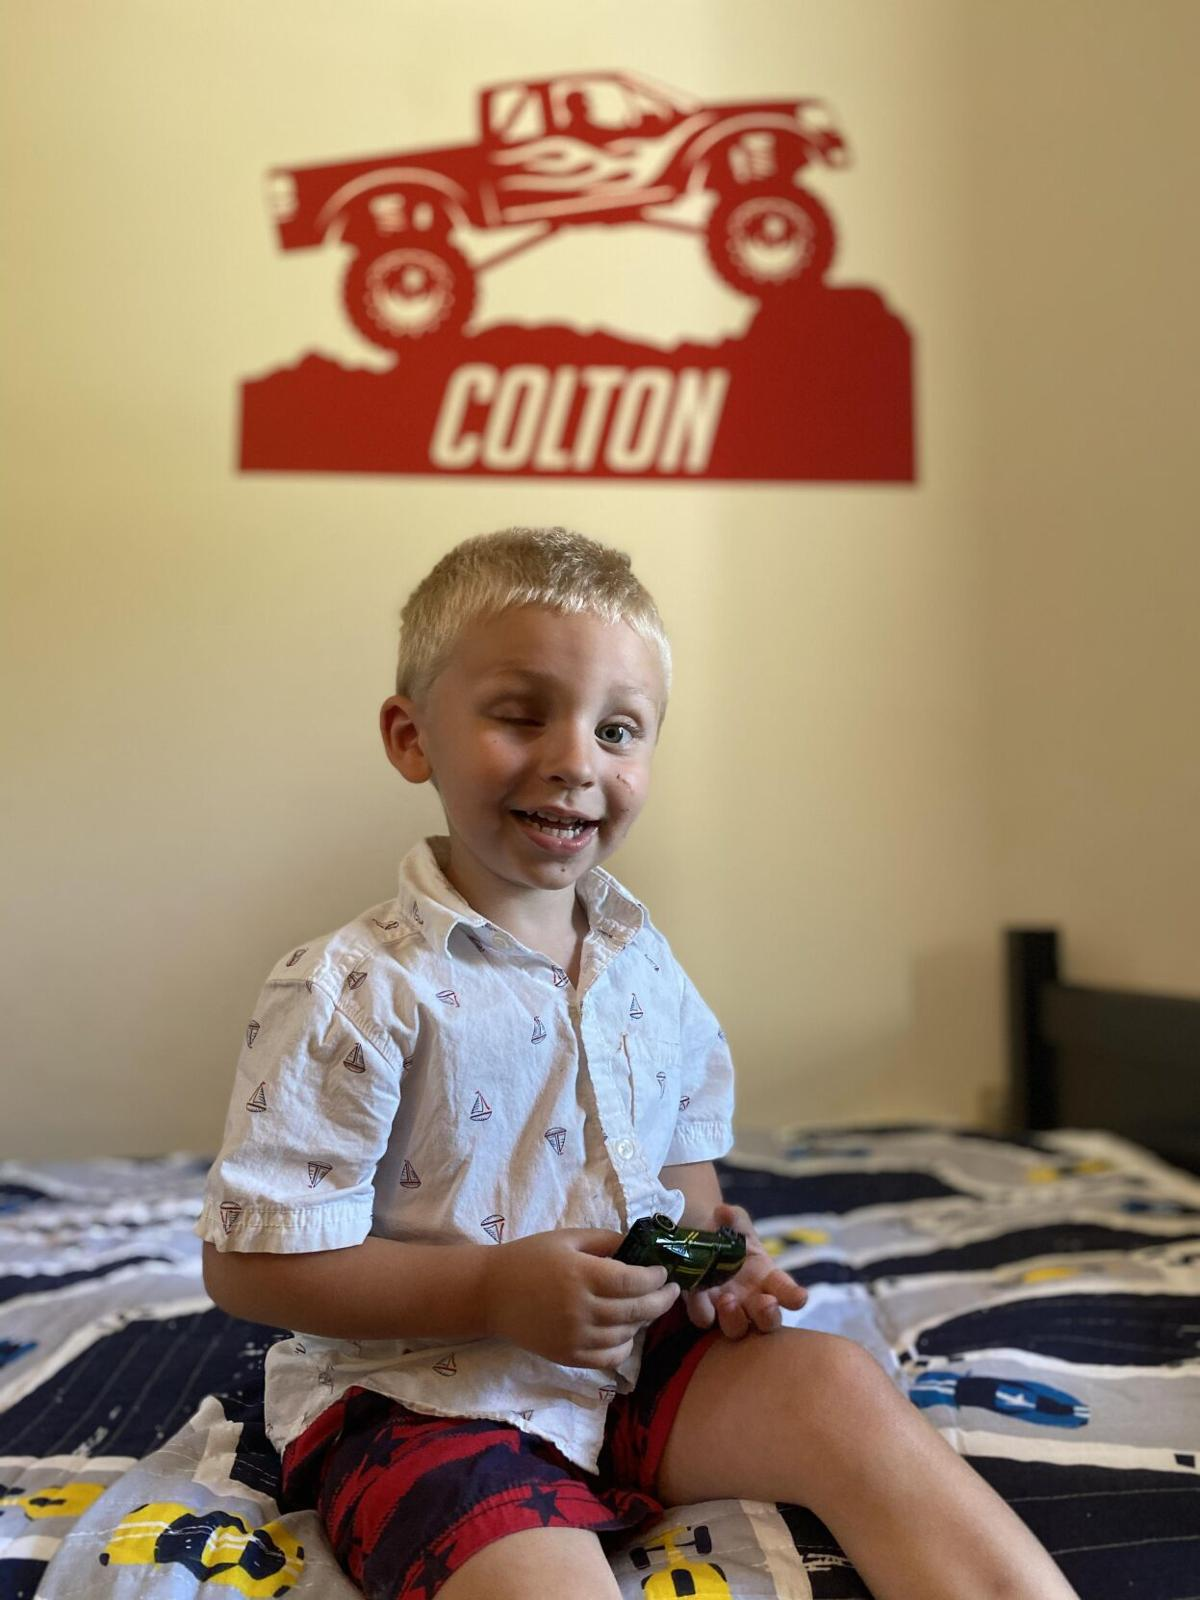 Make-A-Wish Foundation grants Cornwall boy's bedroom wish; Bethlehem race to benefit cause